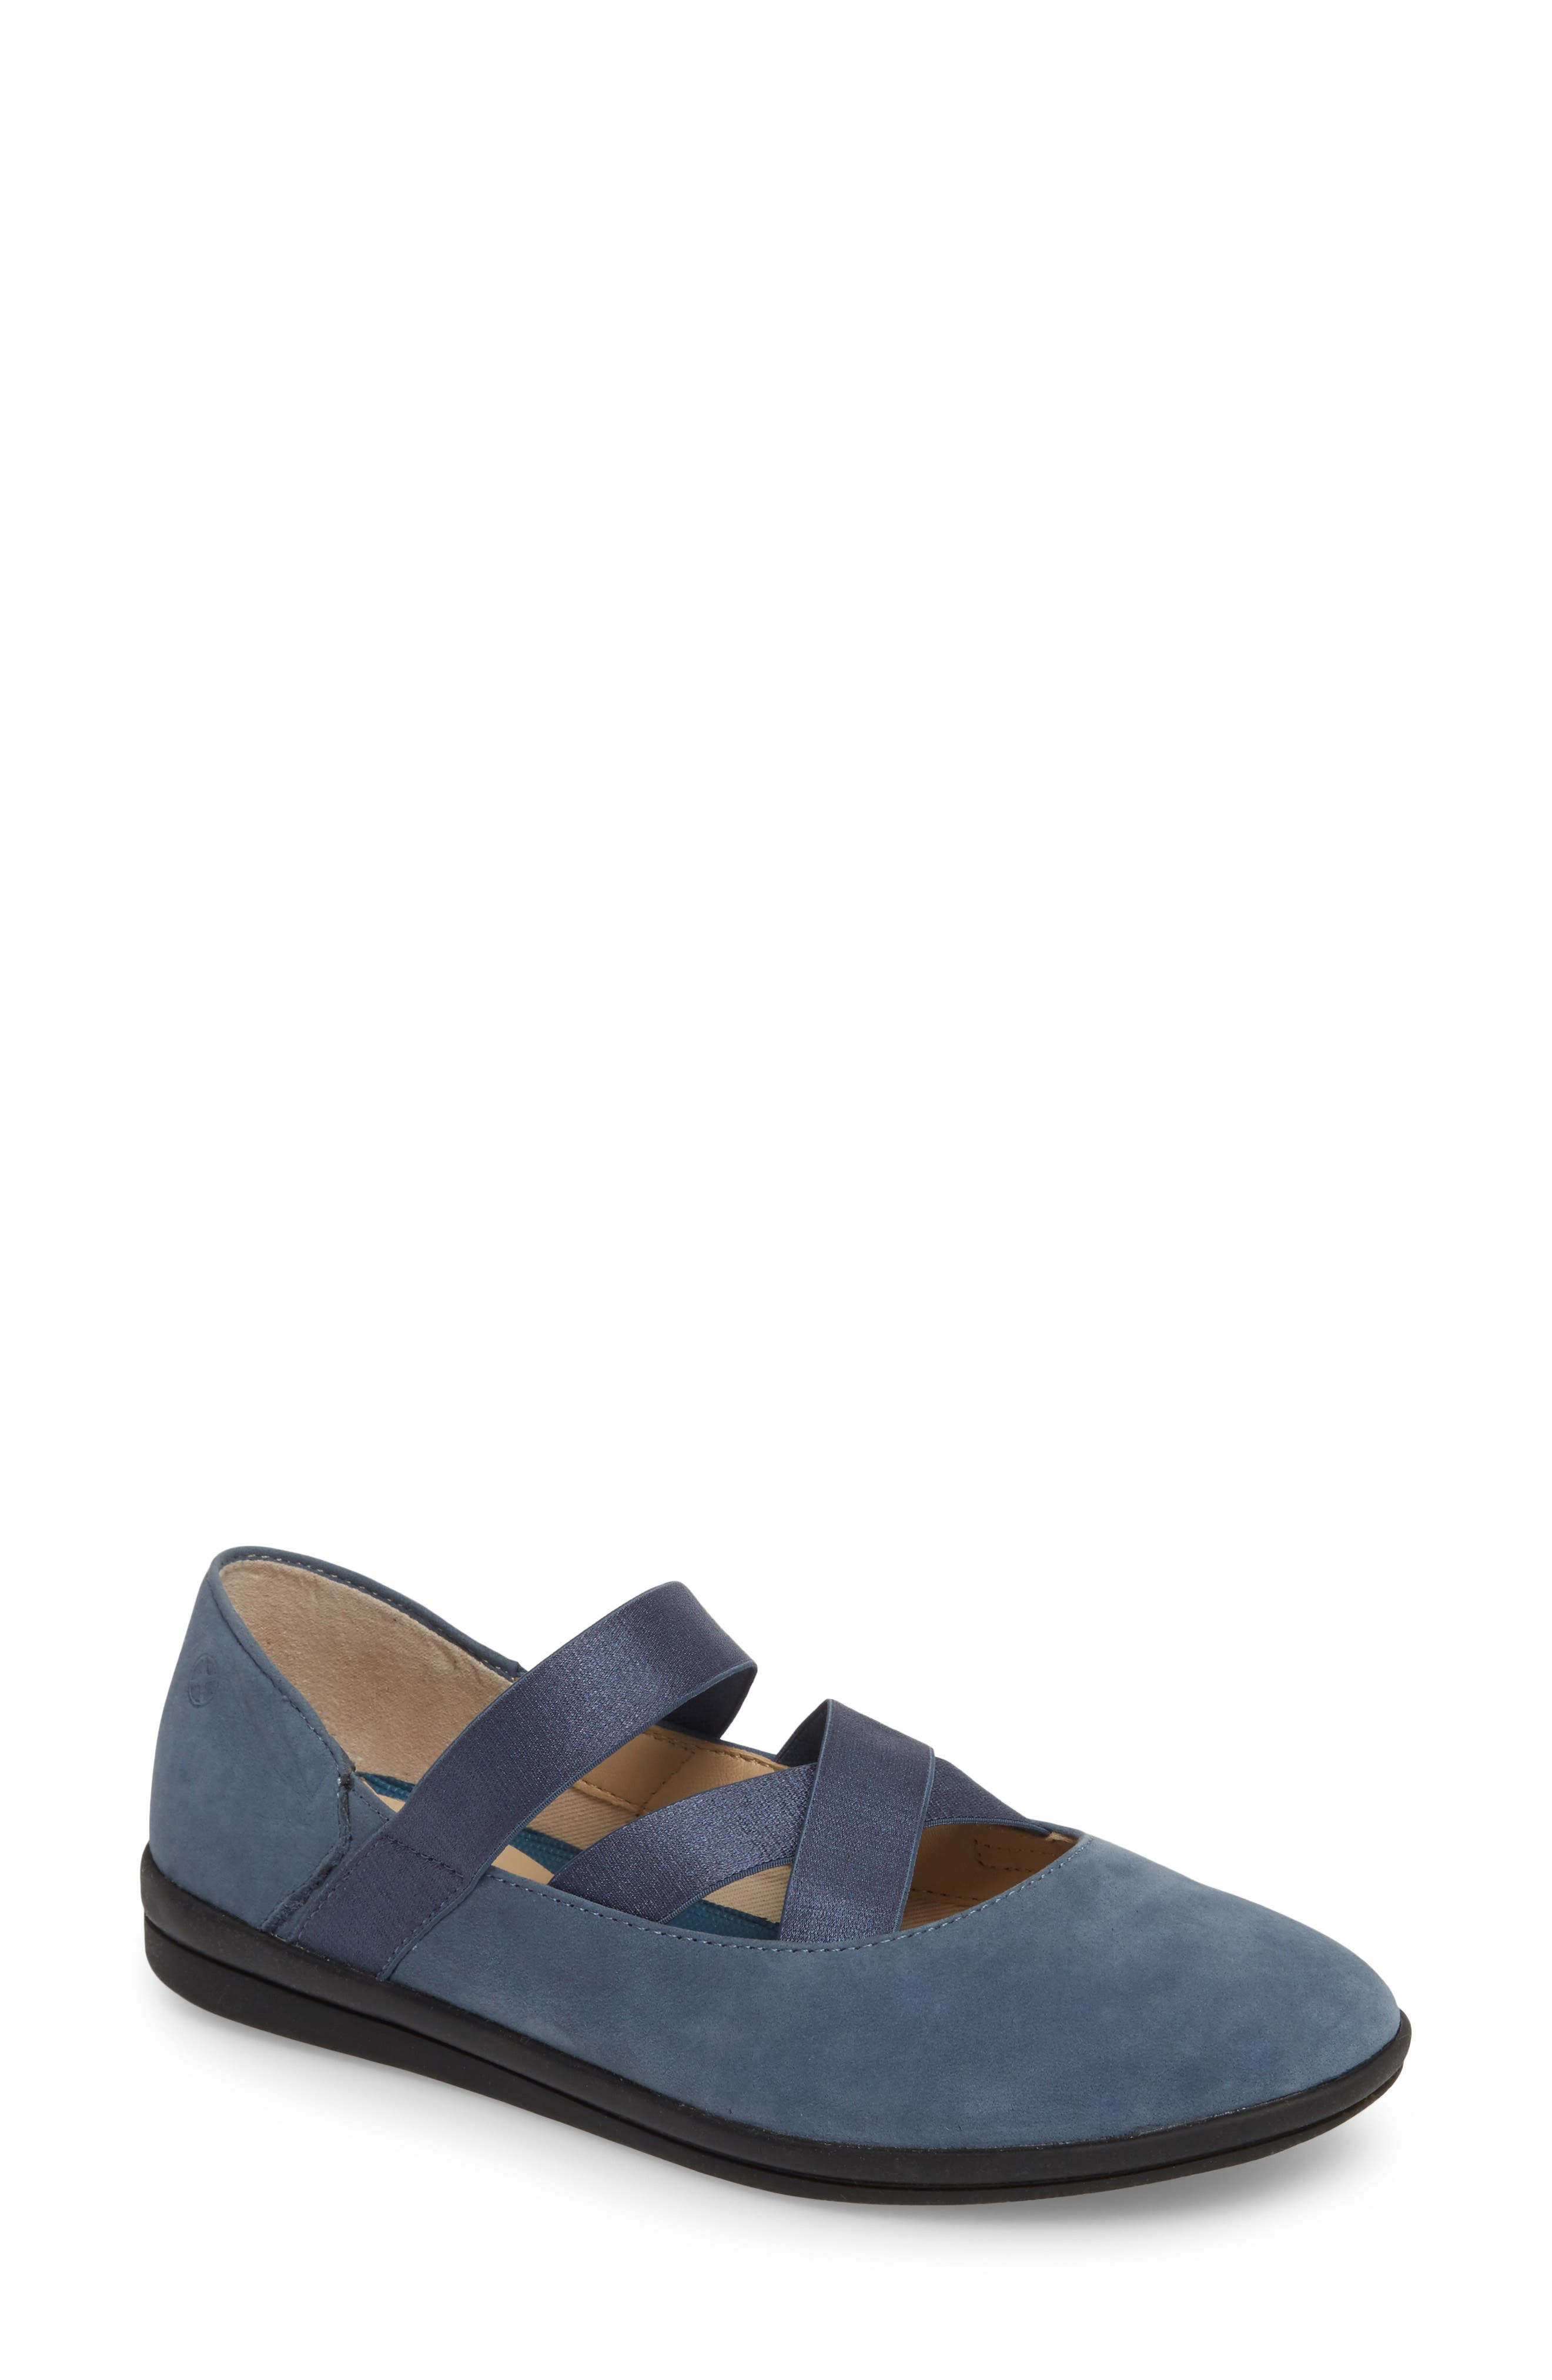 Meree Madrine Cross Strap Flat,                             Main thumbnail 2, color,